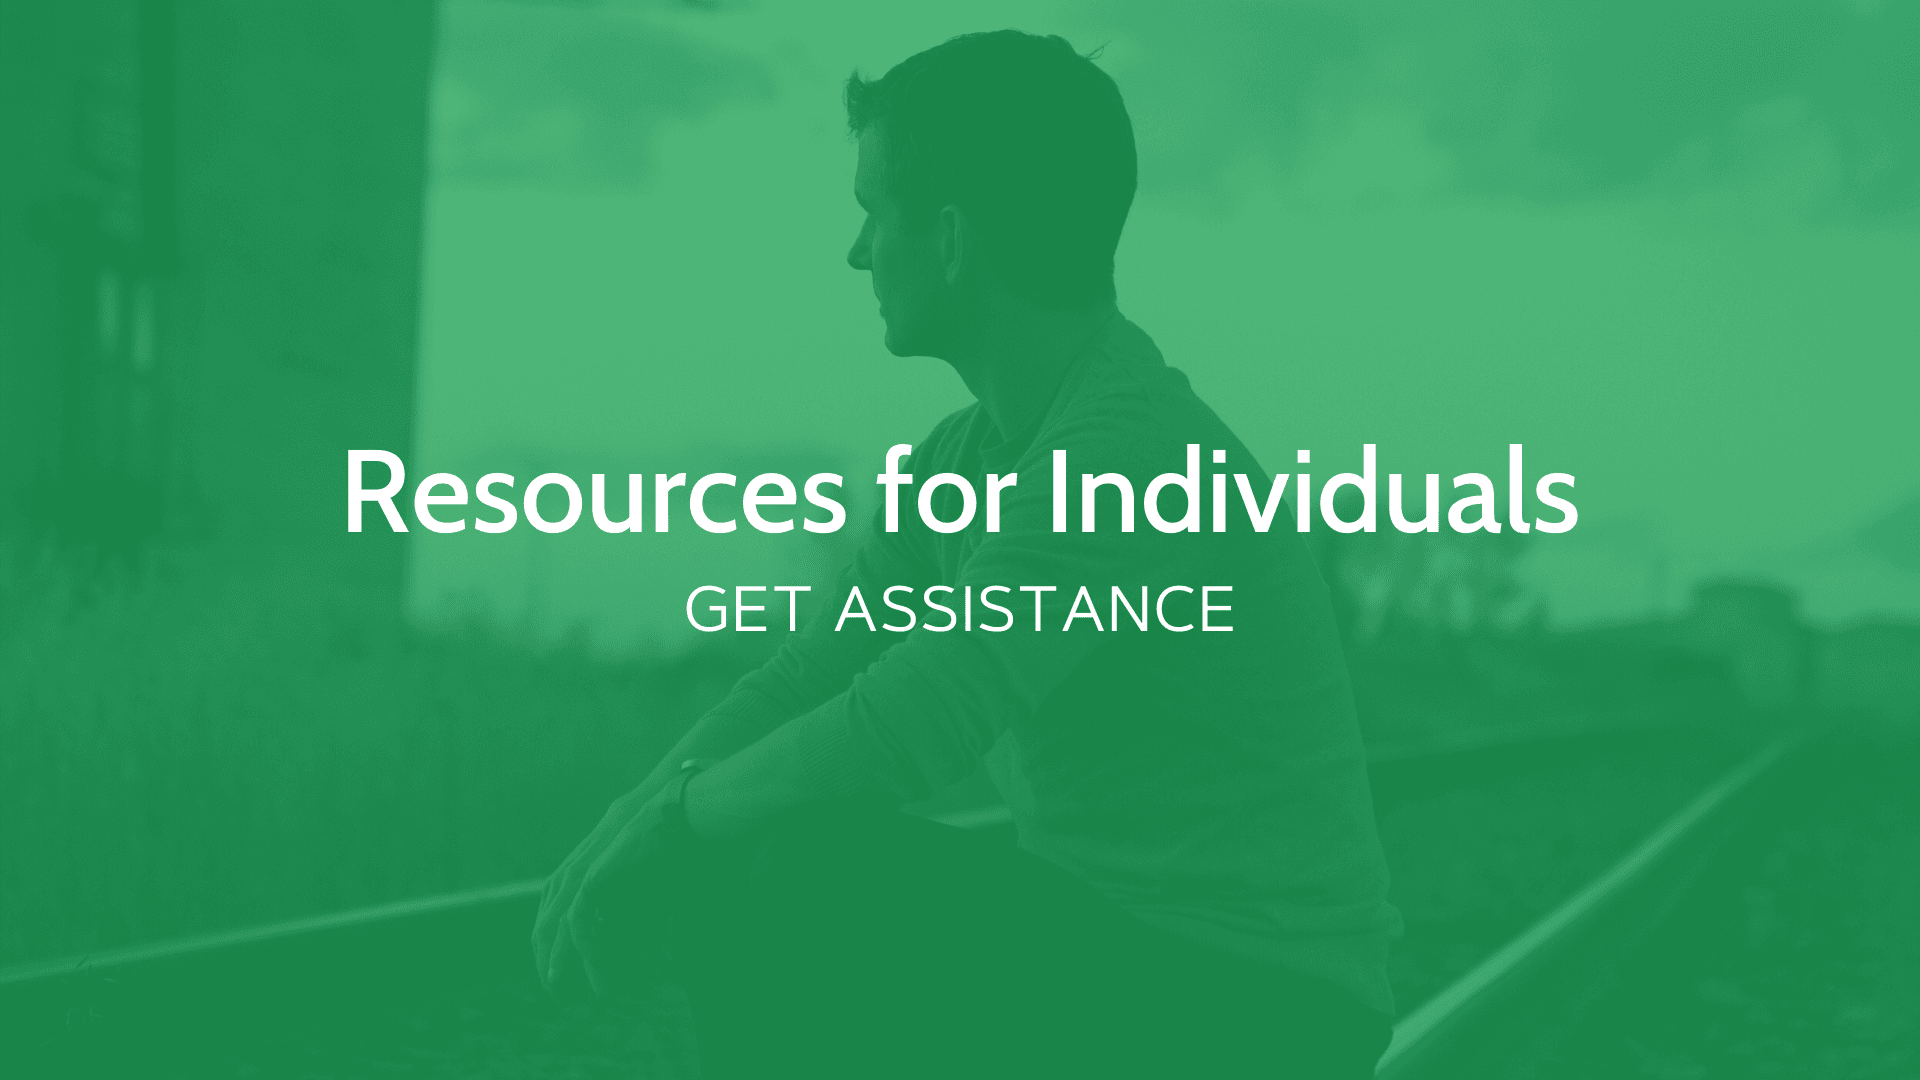 Resources for Individuals